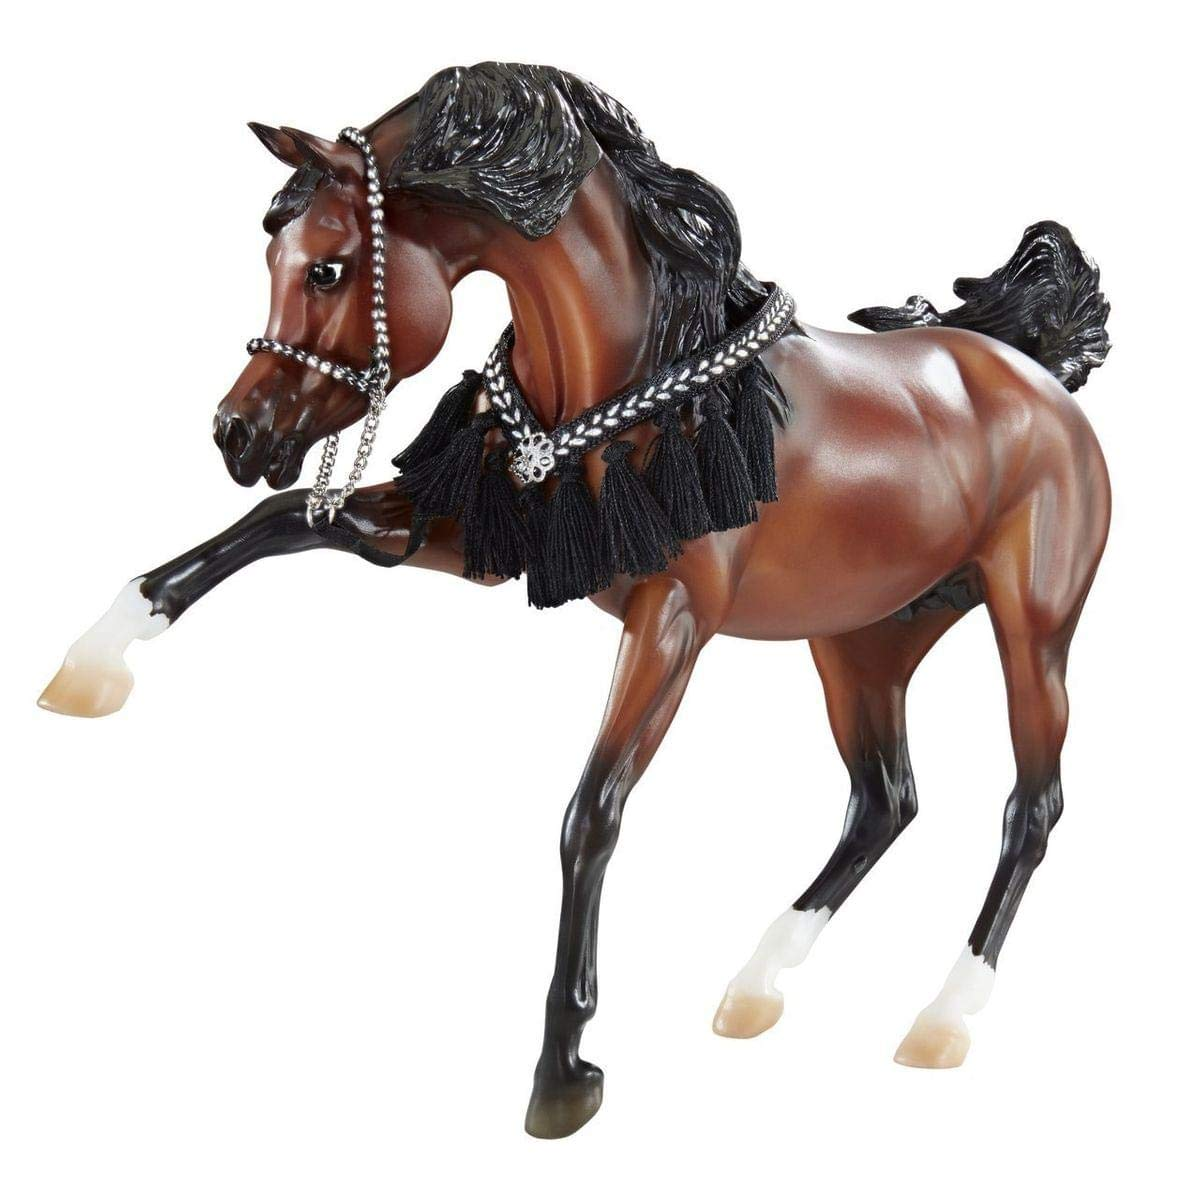 Breyer 1:9 Traditional Series Model Horse: Empres++++//